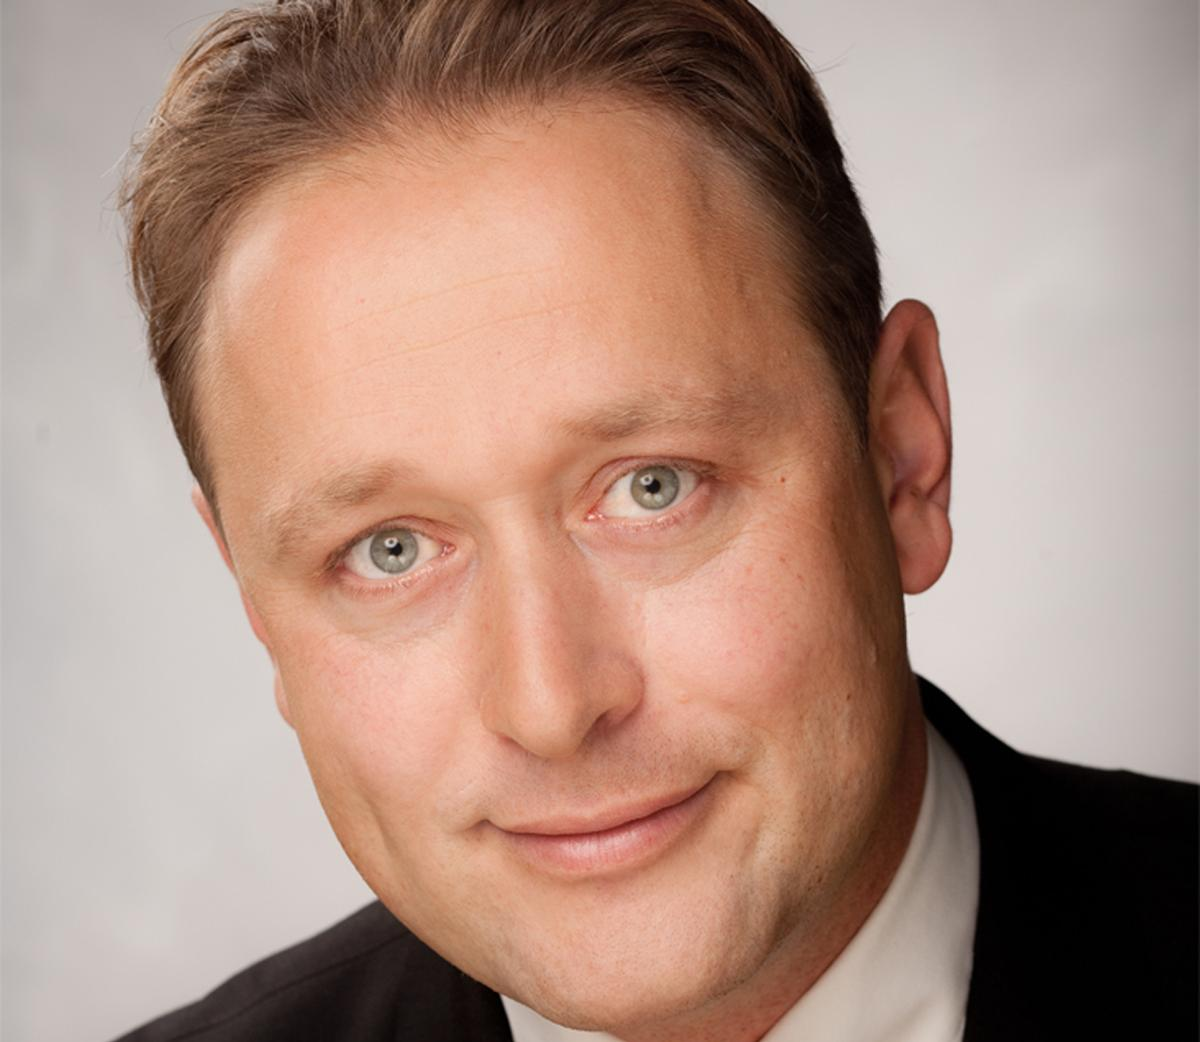 Rainer Bolsinger was appointed to help direct and develop the new division